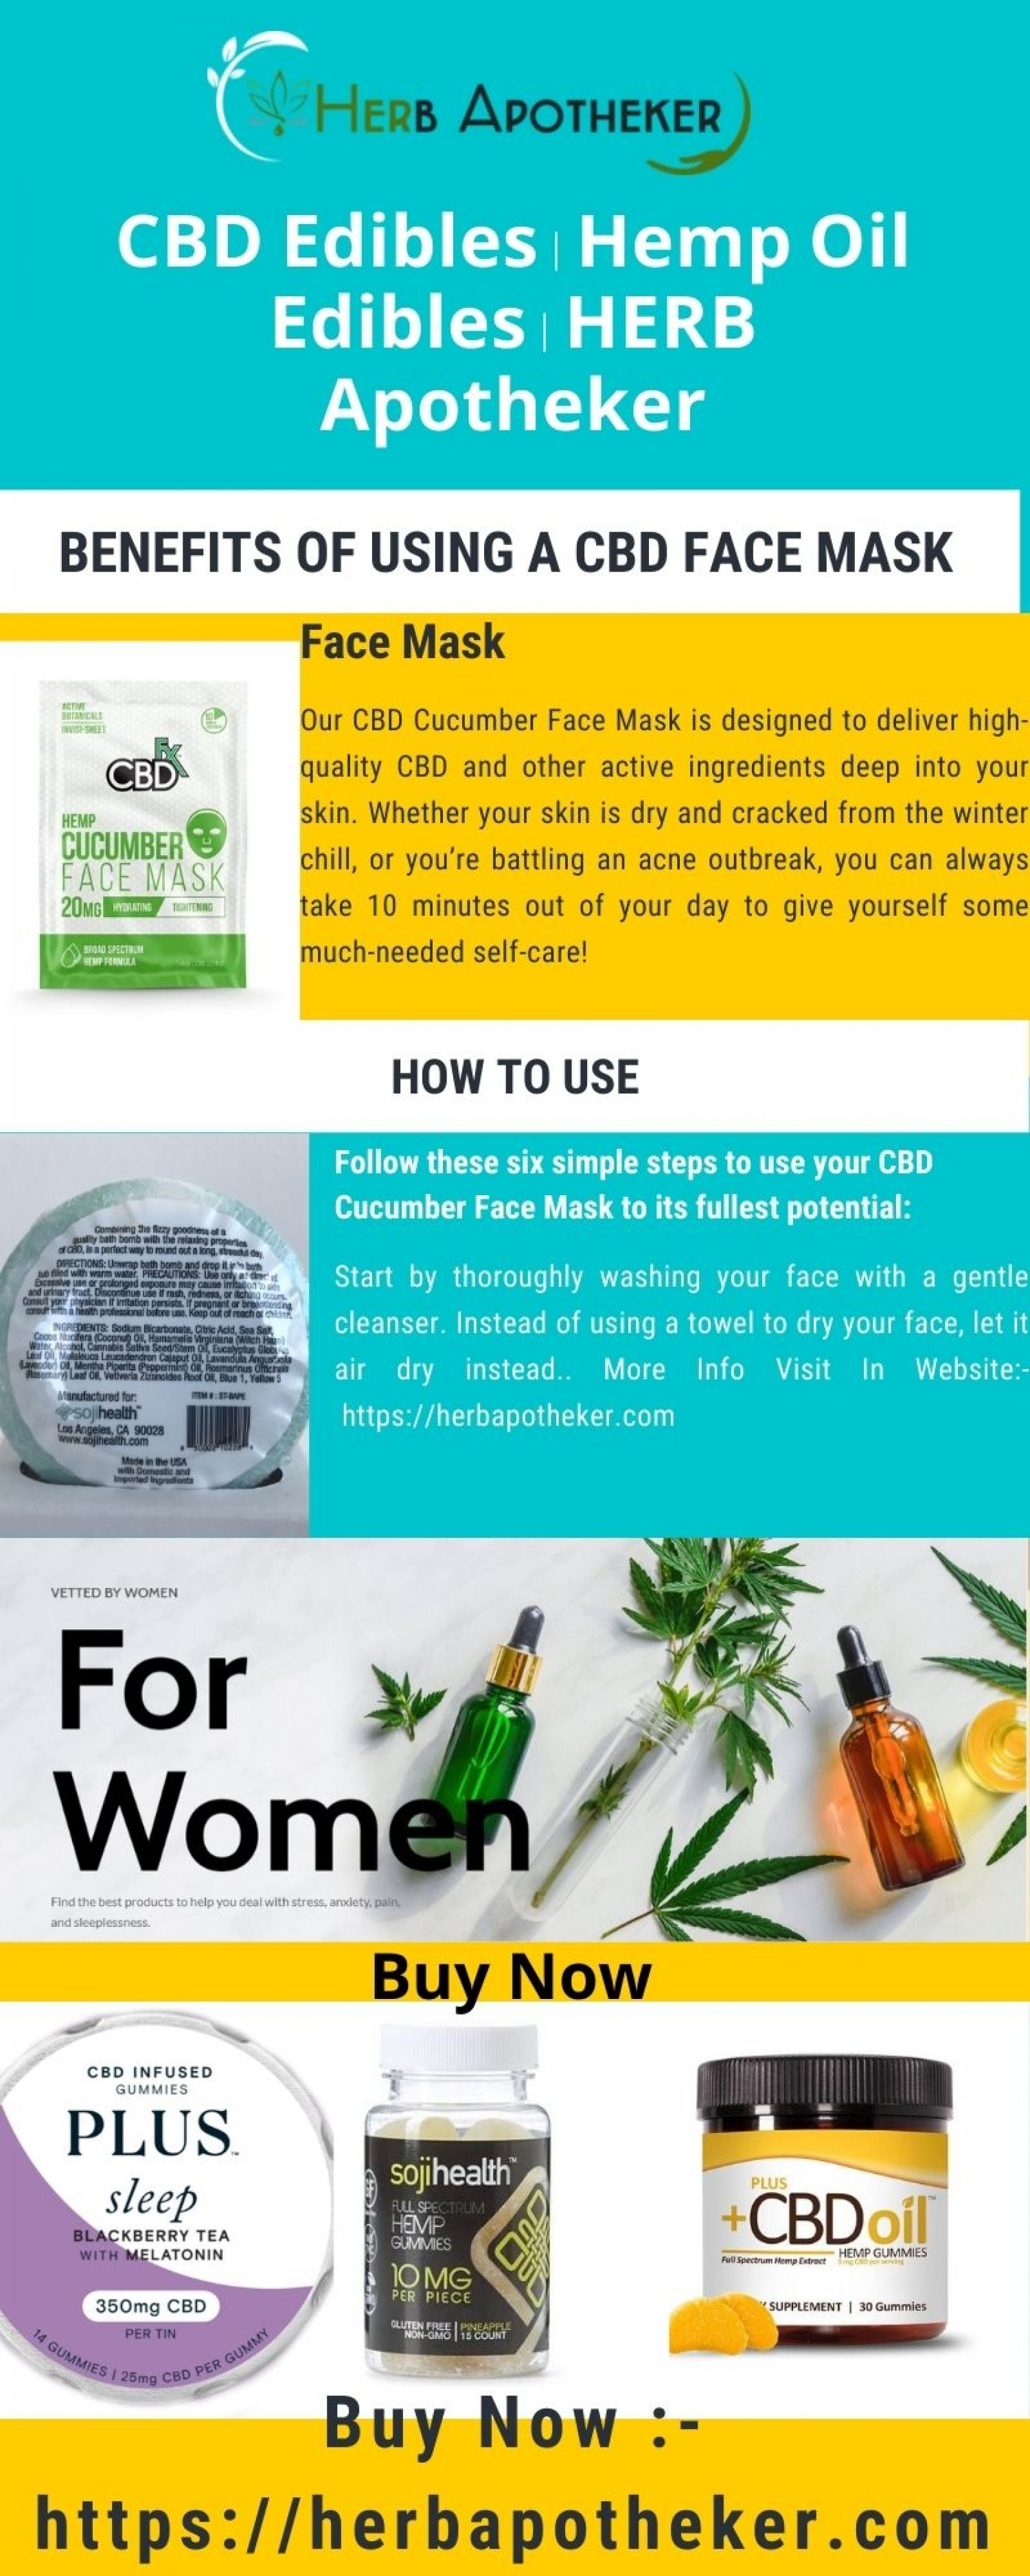 CBD For Stress & Mood Support - HERB Apotheker Infographic